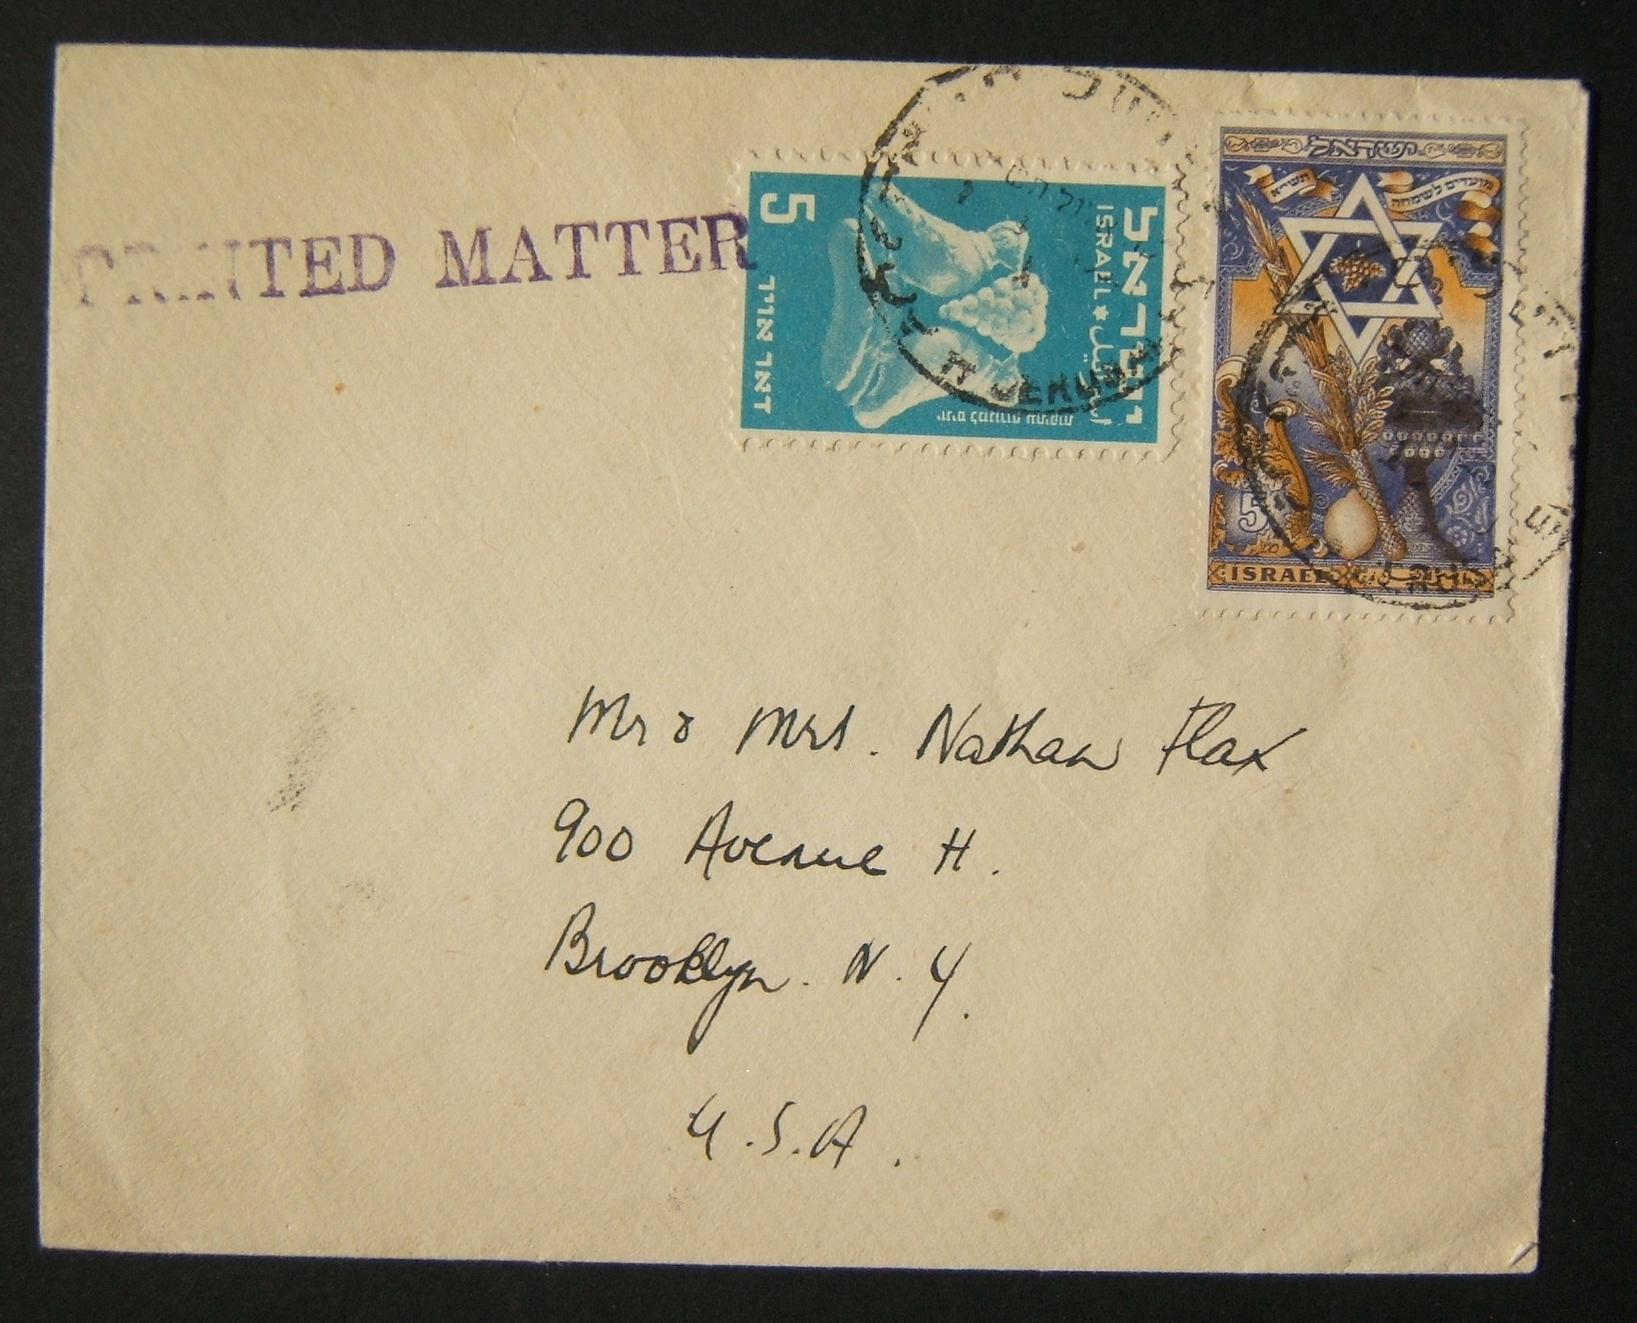 1950 1st airmail / PO's, rates & routes: 7-9-1950 surface mailed printed matter cover ex JERUSALEM to NYC franked 10pr at the SU-2 period pm rate using 5pr (Ba32) + 5pr 1950 New Ye